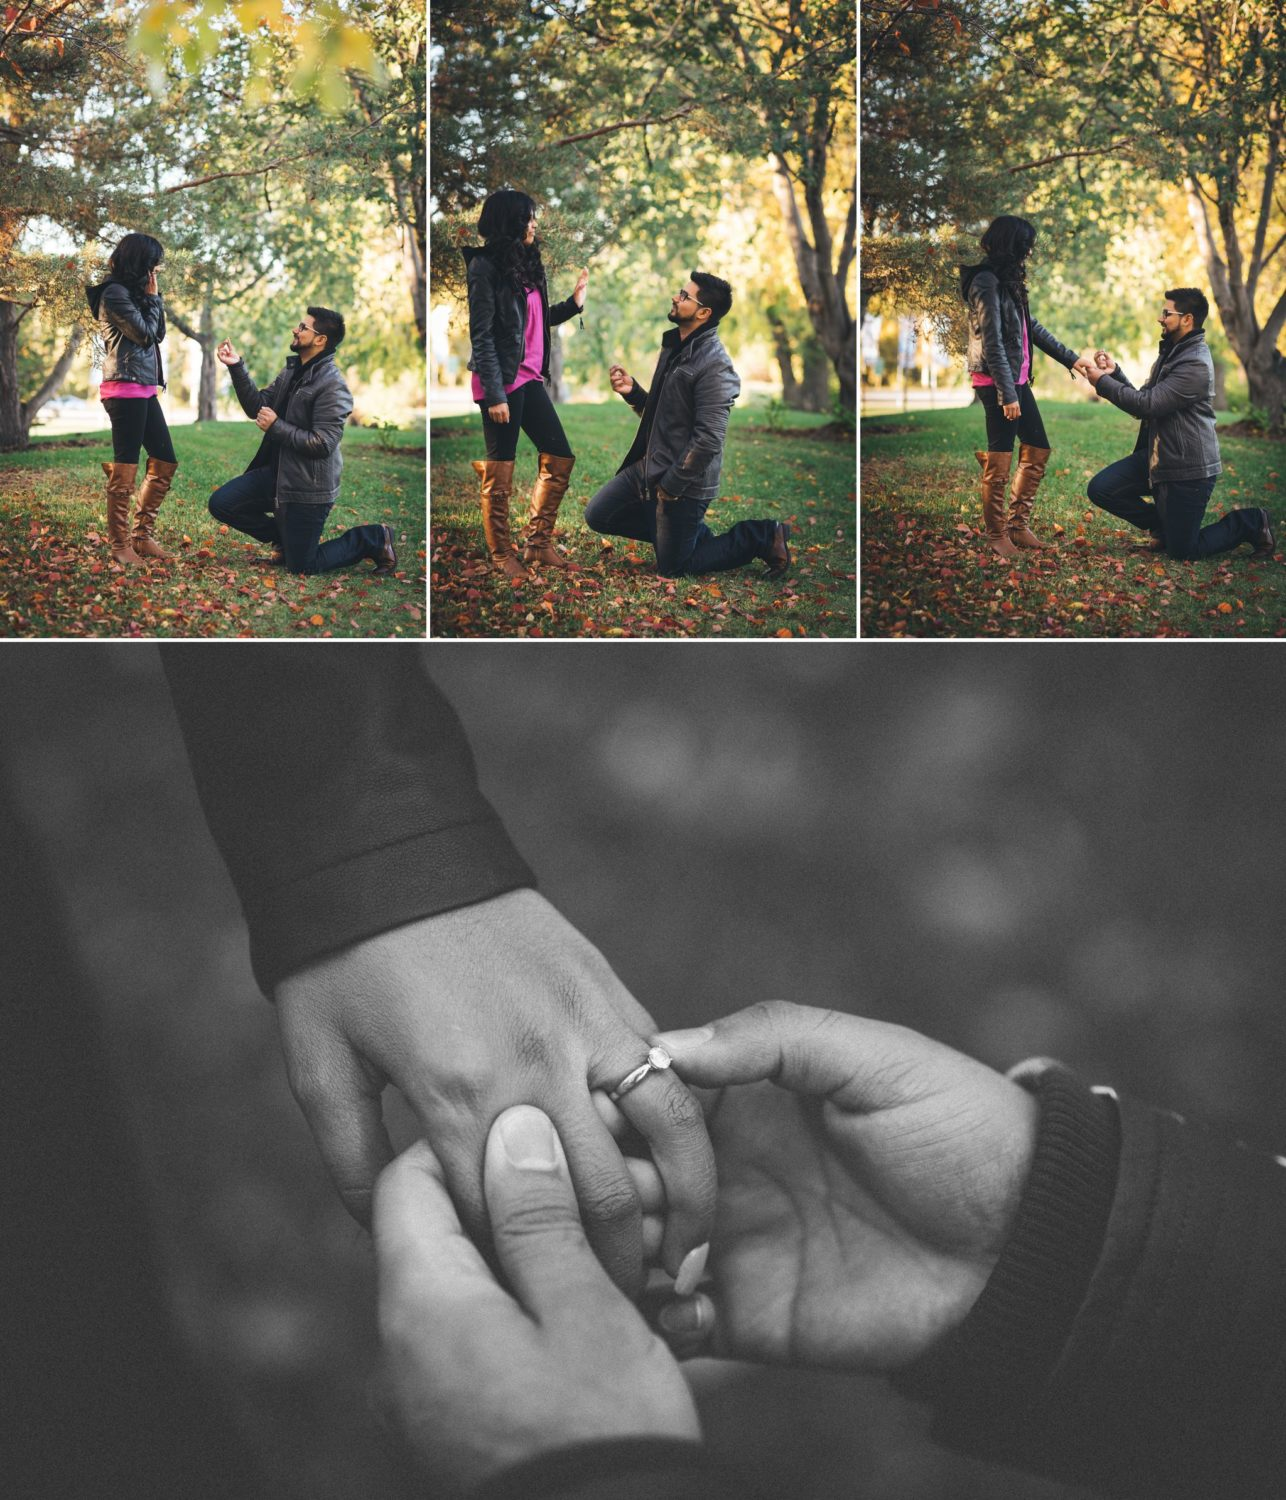 edmonton-wedding-photographers-box-cube-photograph-zubair-amara-engagement 5